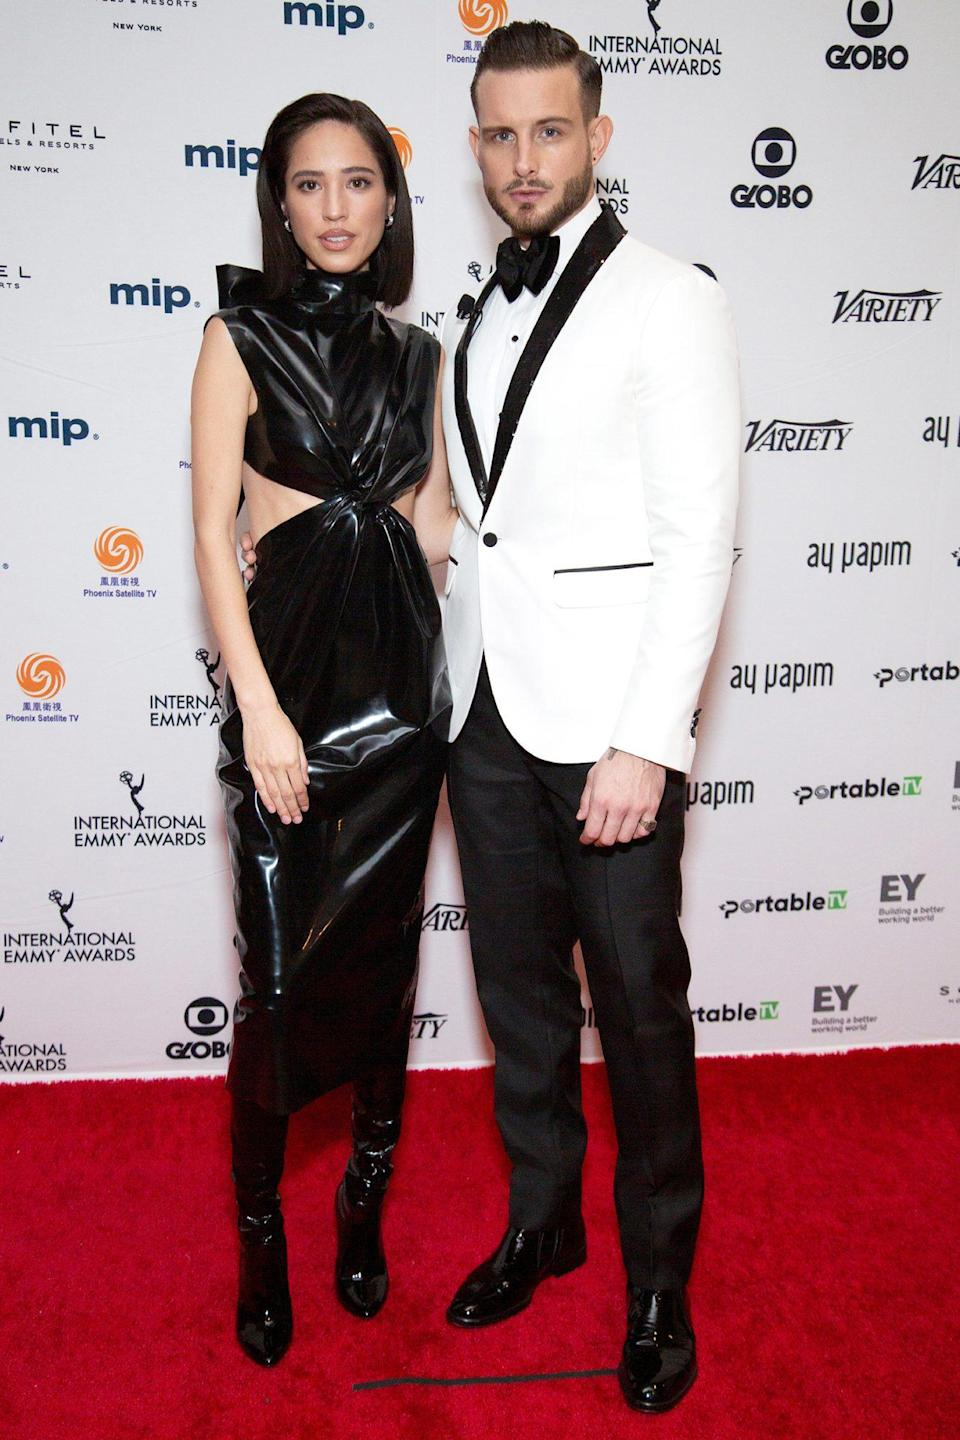 <p>Nico Tortorella and Kelsey Asbille host the 48th International Emmy Awards on Monday in N.Y.C.</p>